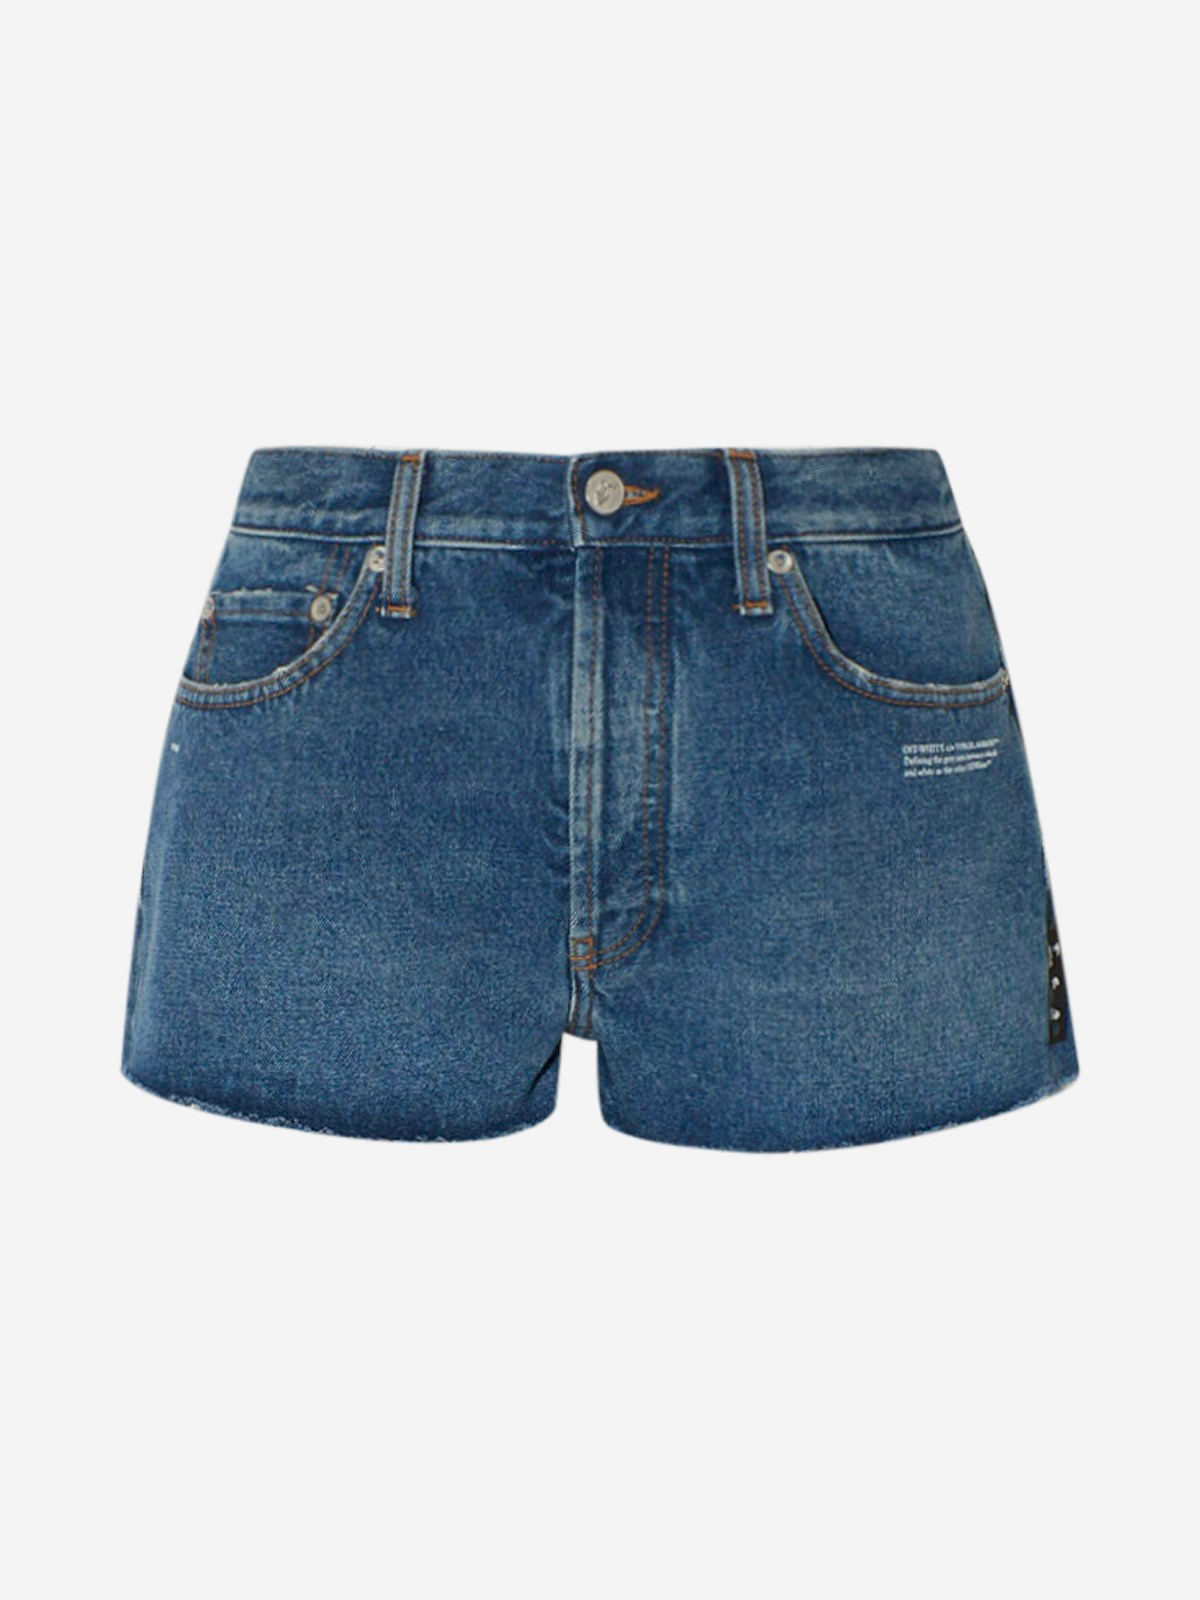 Off-White Jeans SHORTS JEANS BLU